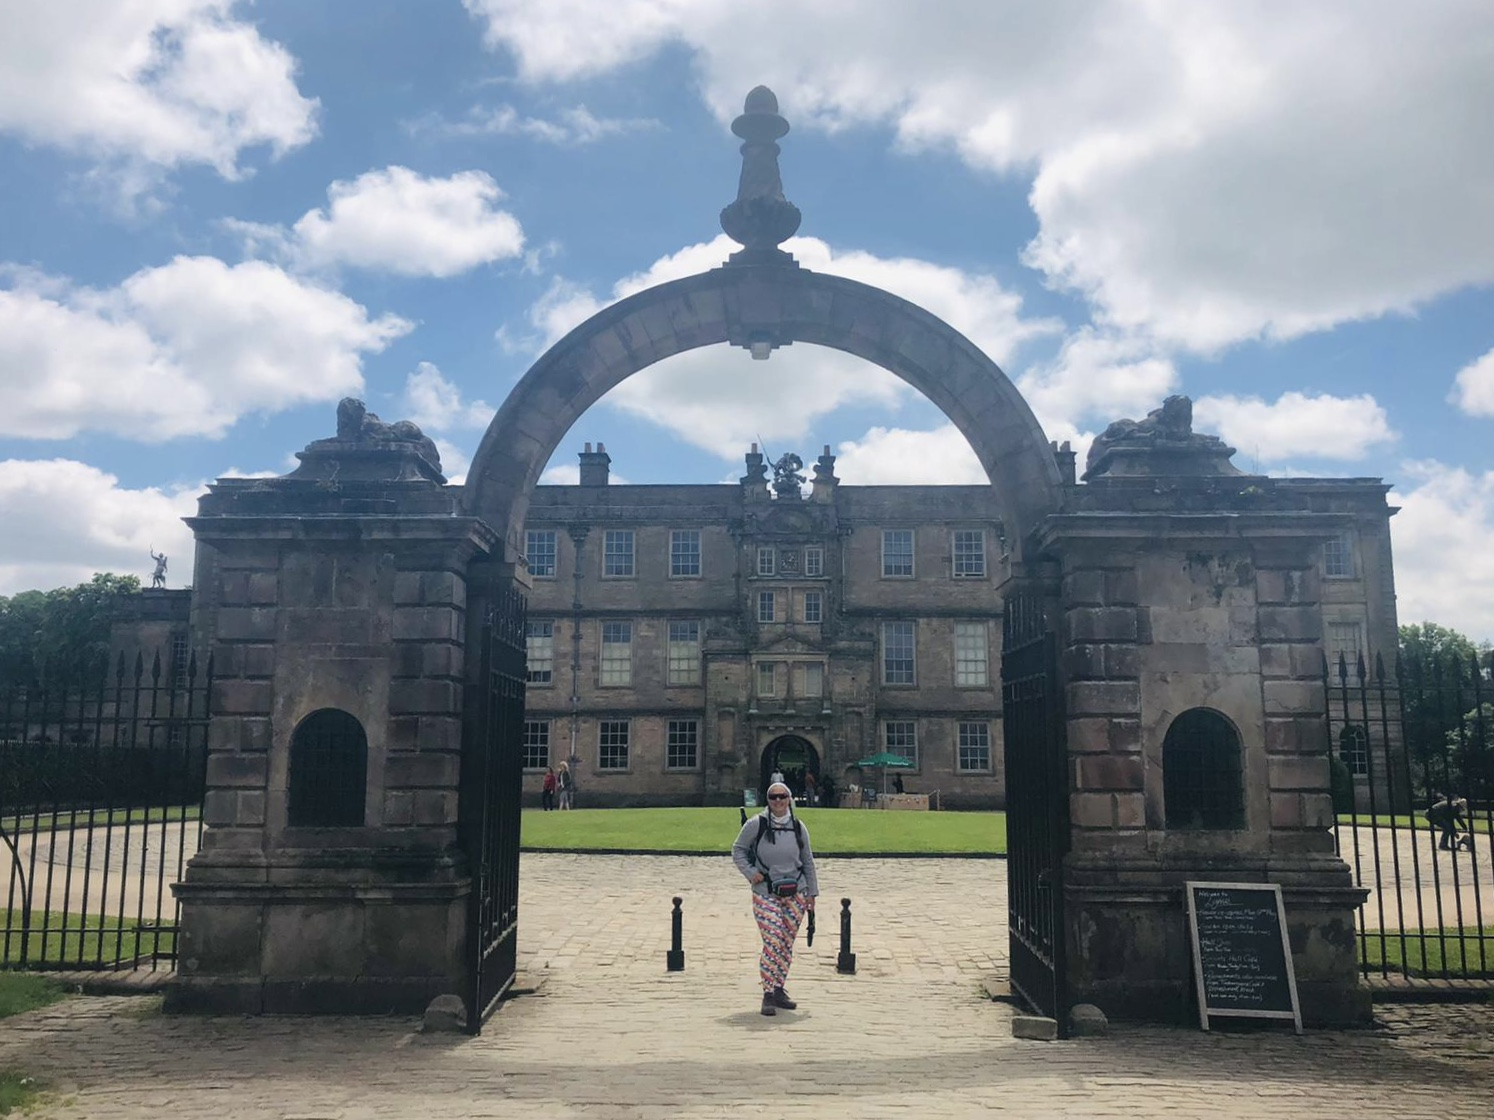 Ellen stands under an large stone archway at the entrance to Lyme house.